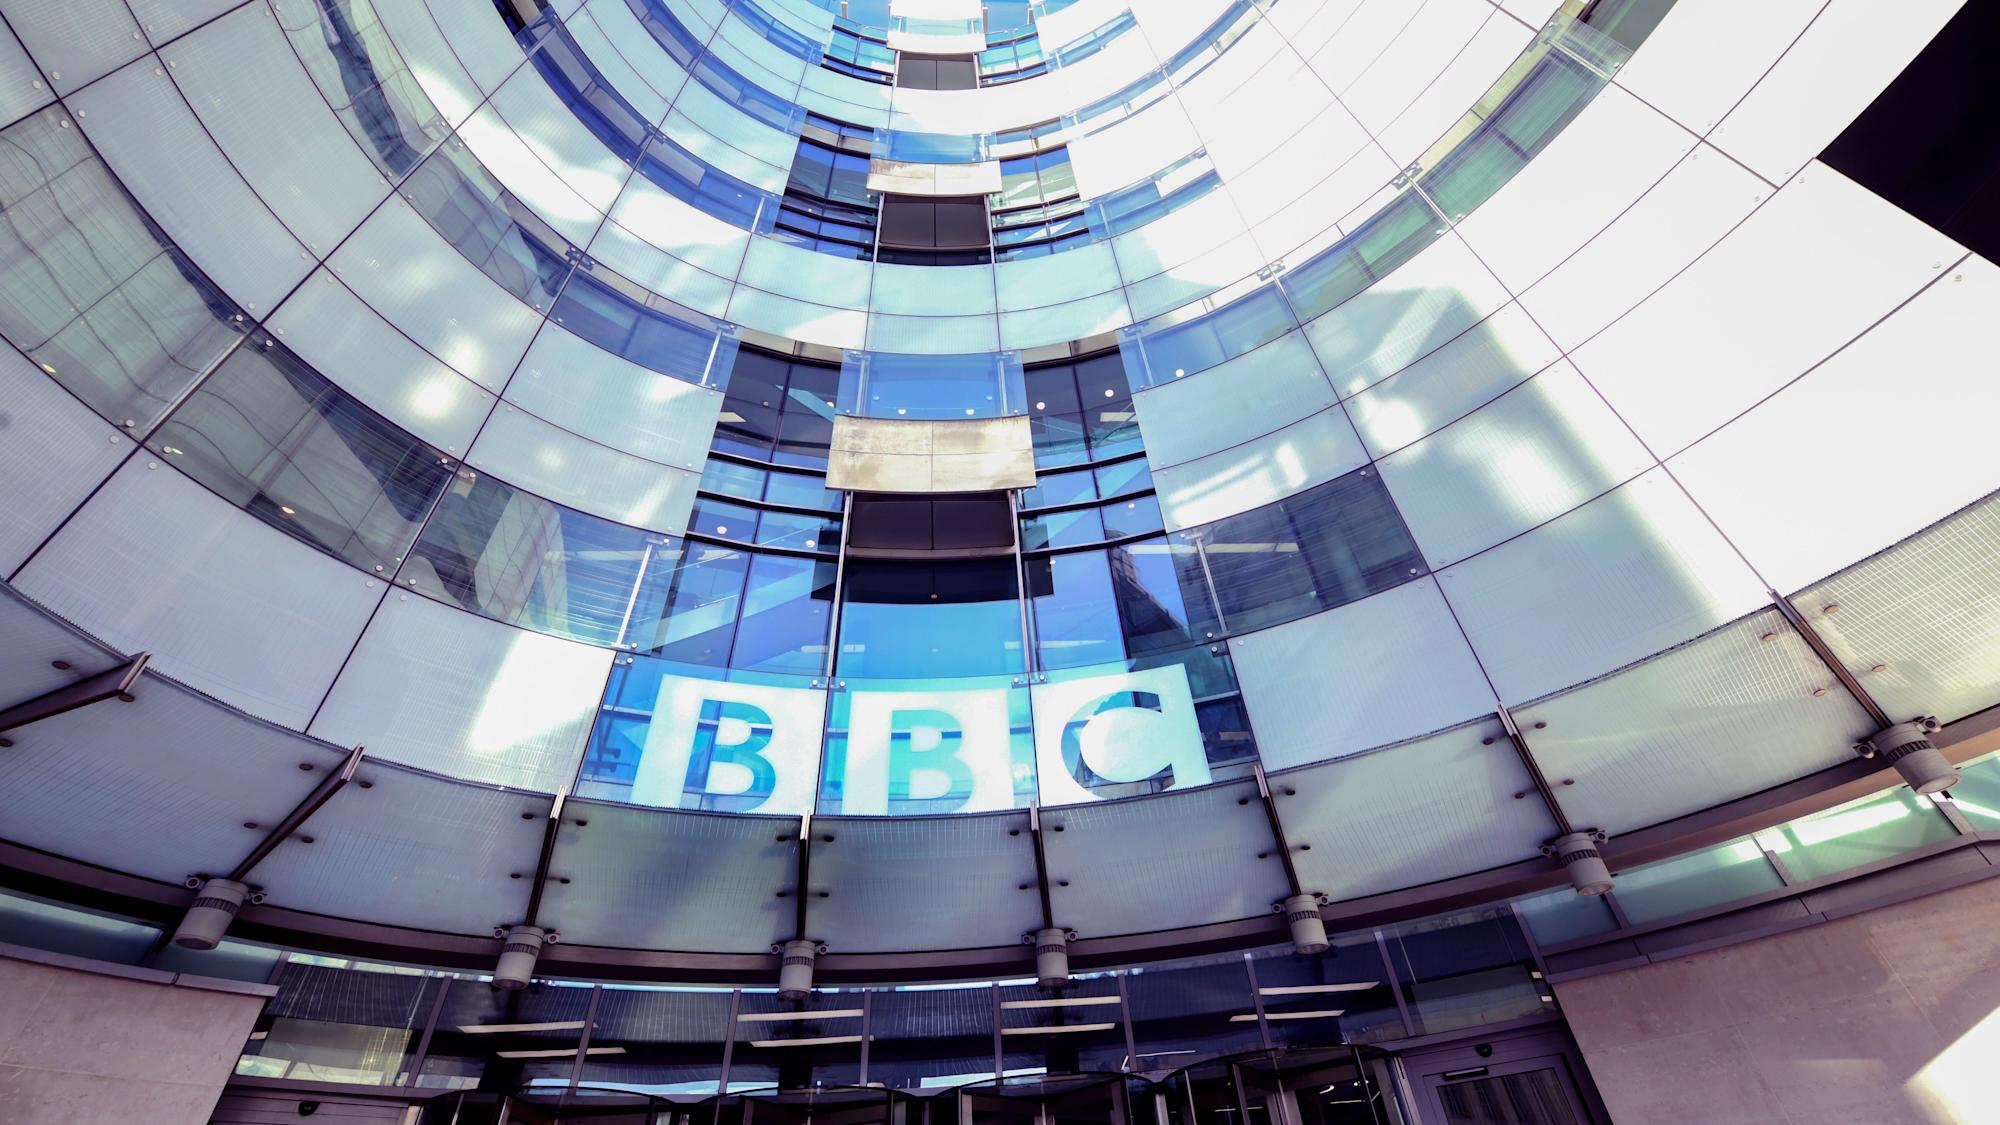 Theresa May's former communications director appointed to BBC board